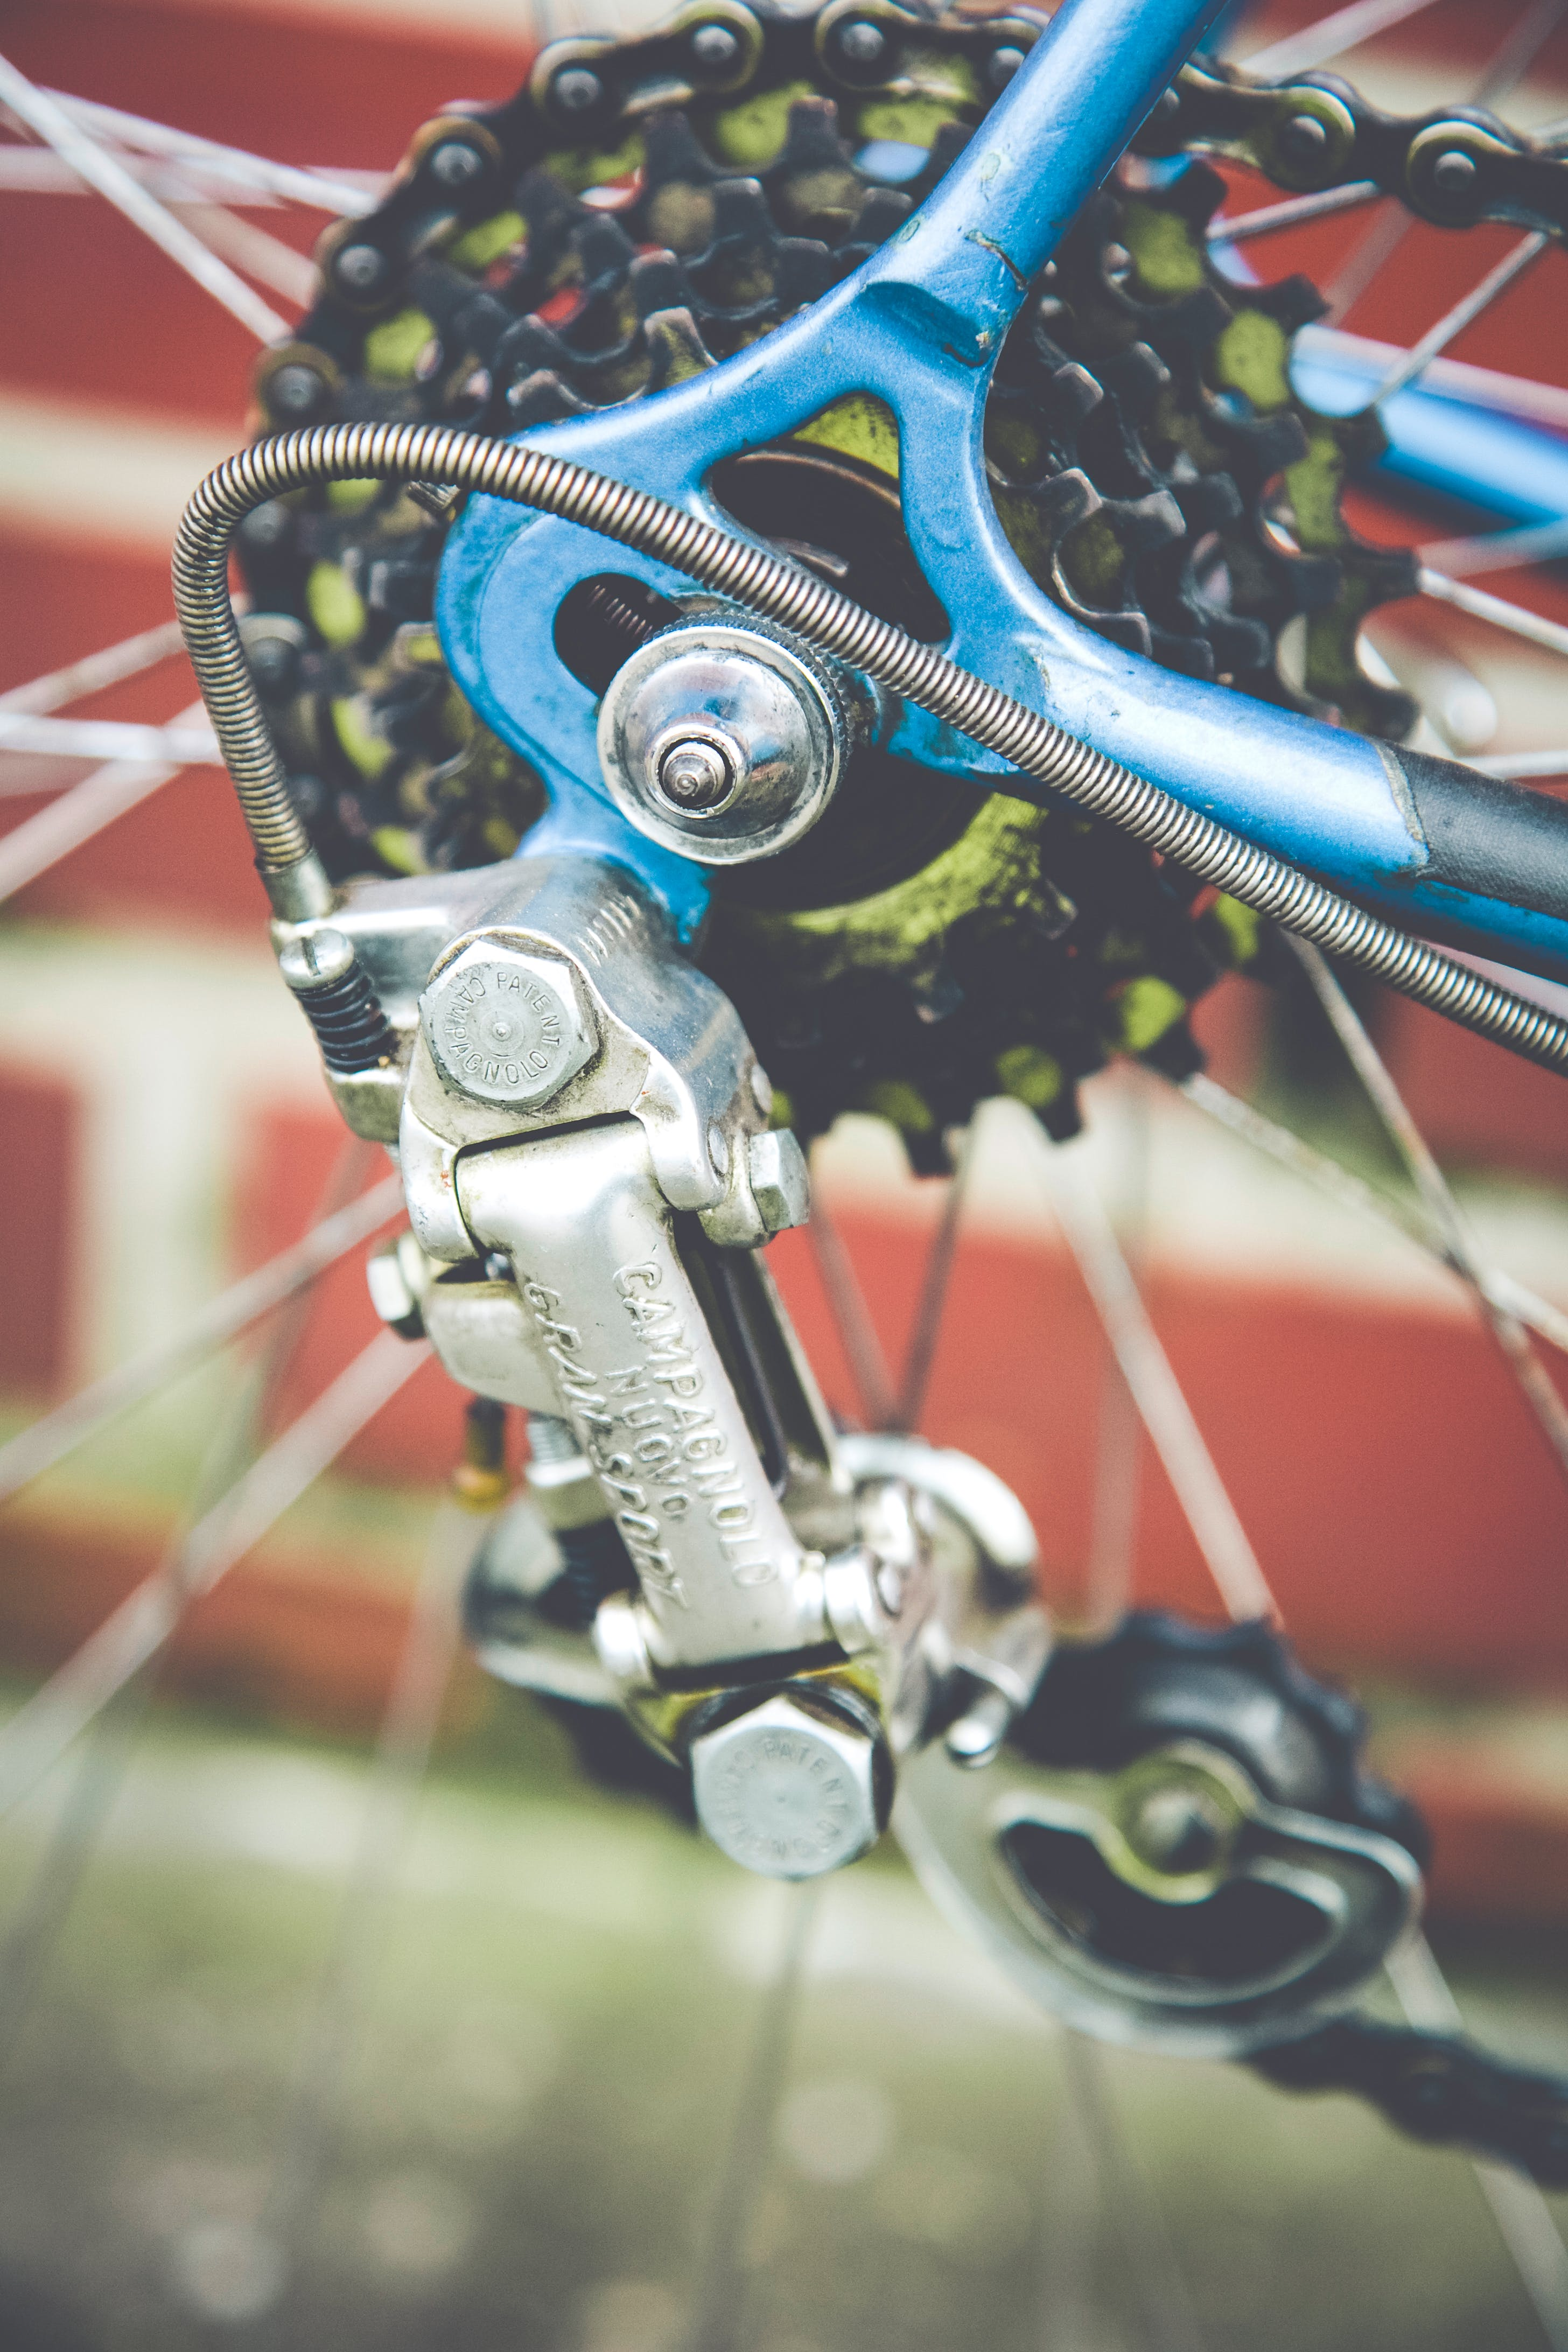 Free stock photo of bicycle, chrome, classic, clean